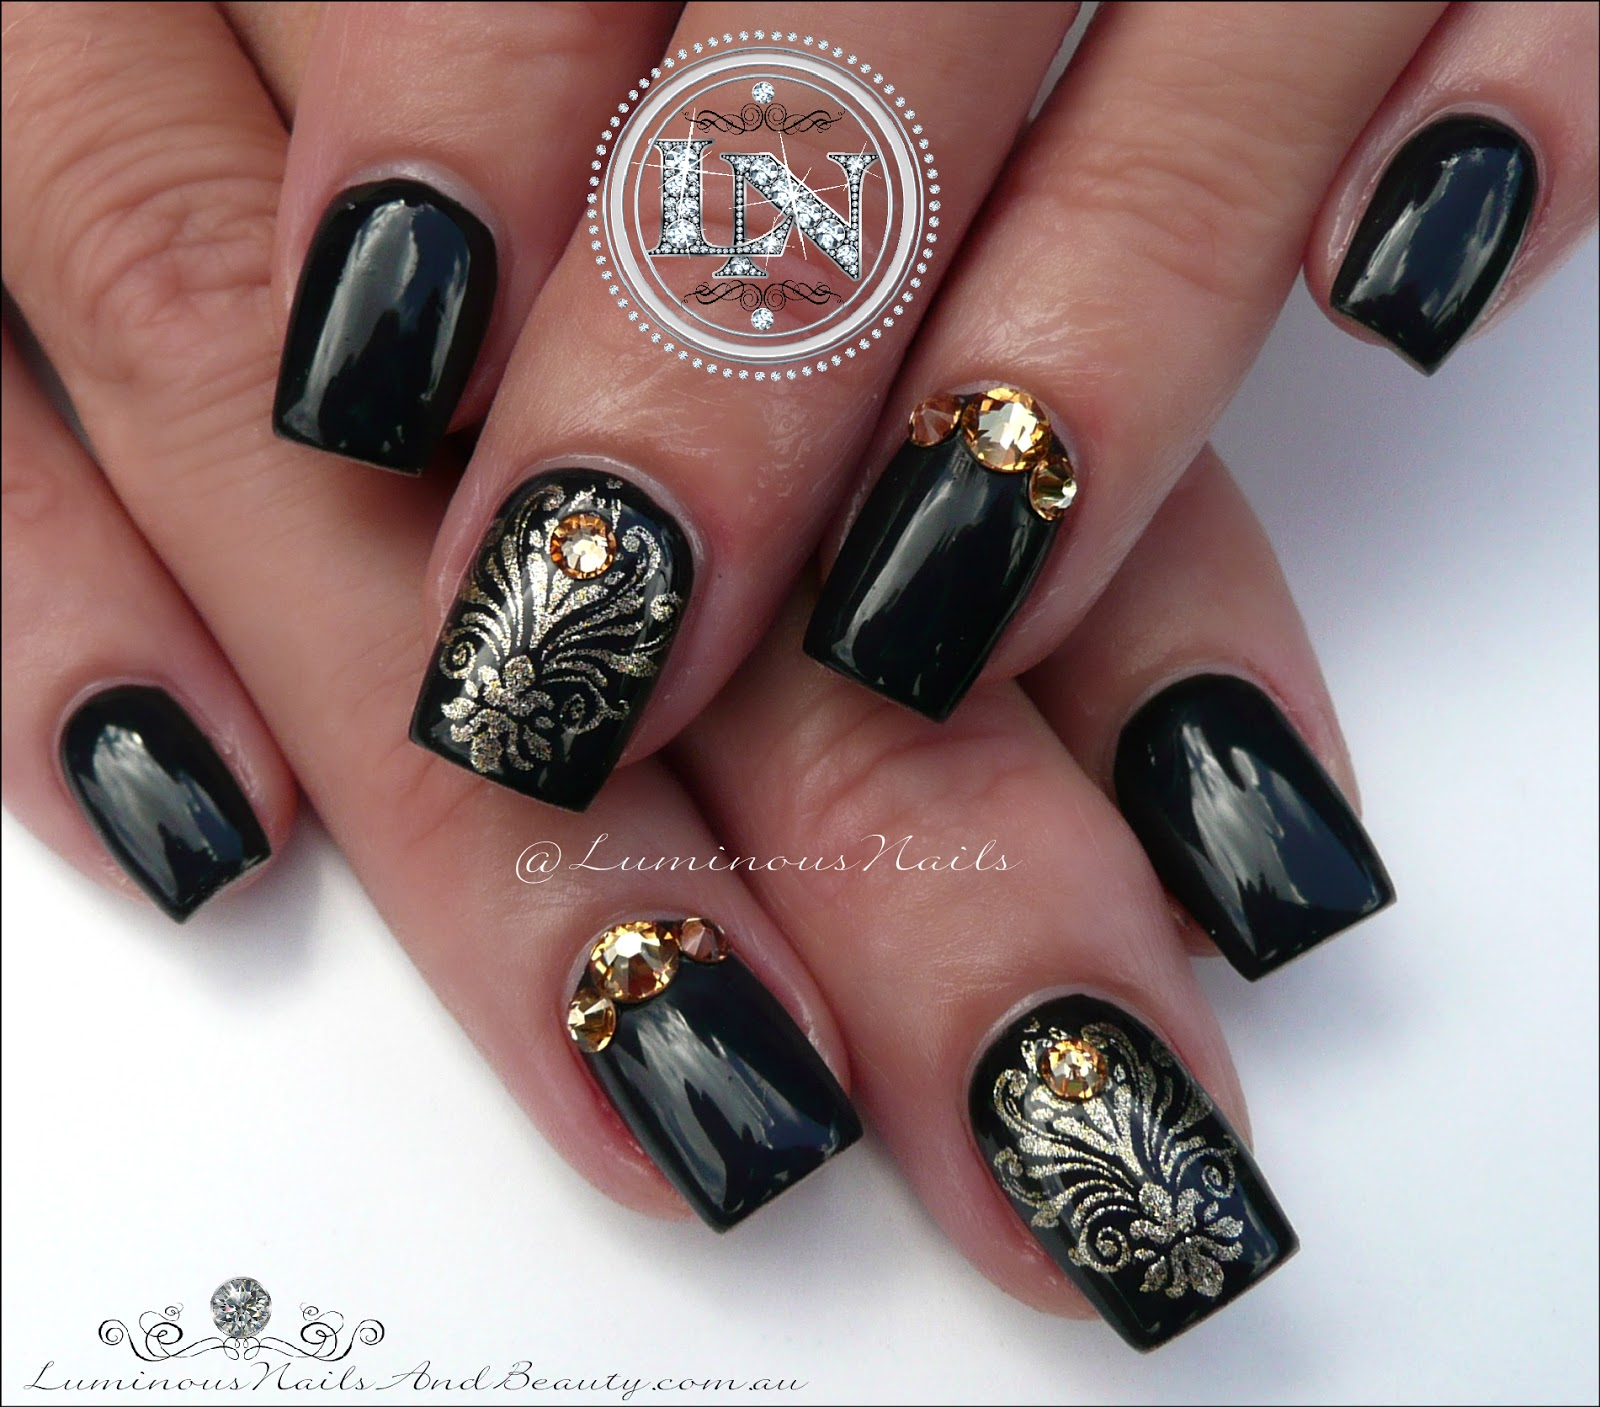 Glossy Black Nails With Damask Stamping Acrylic Gel